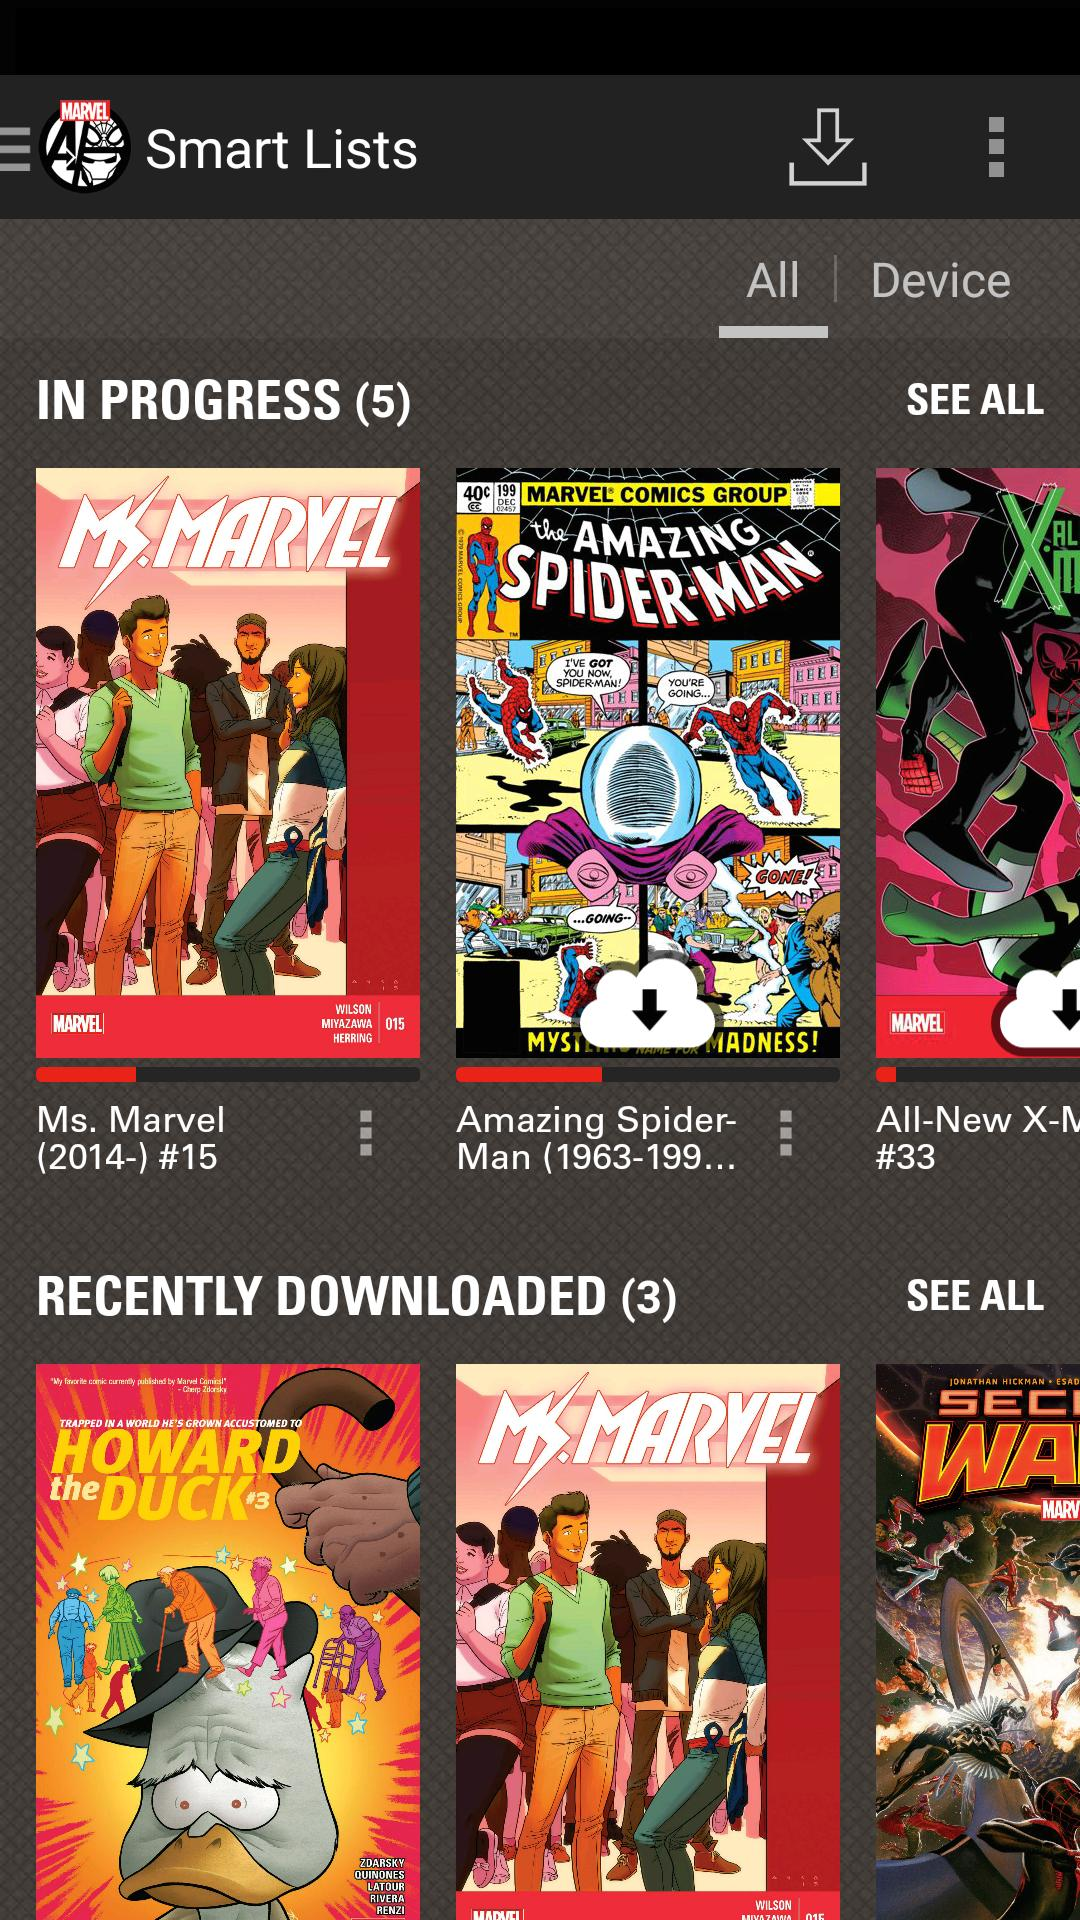 Marvel Comics 3.10.15.310399 Screenshot 2